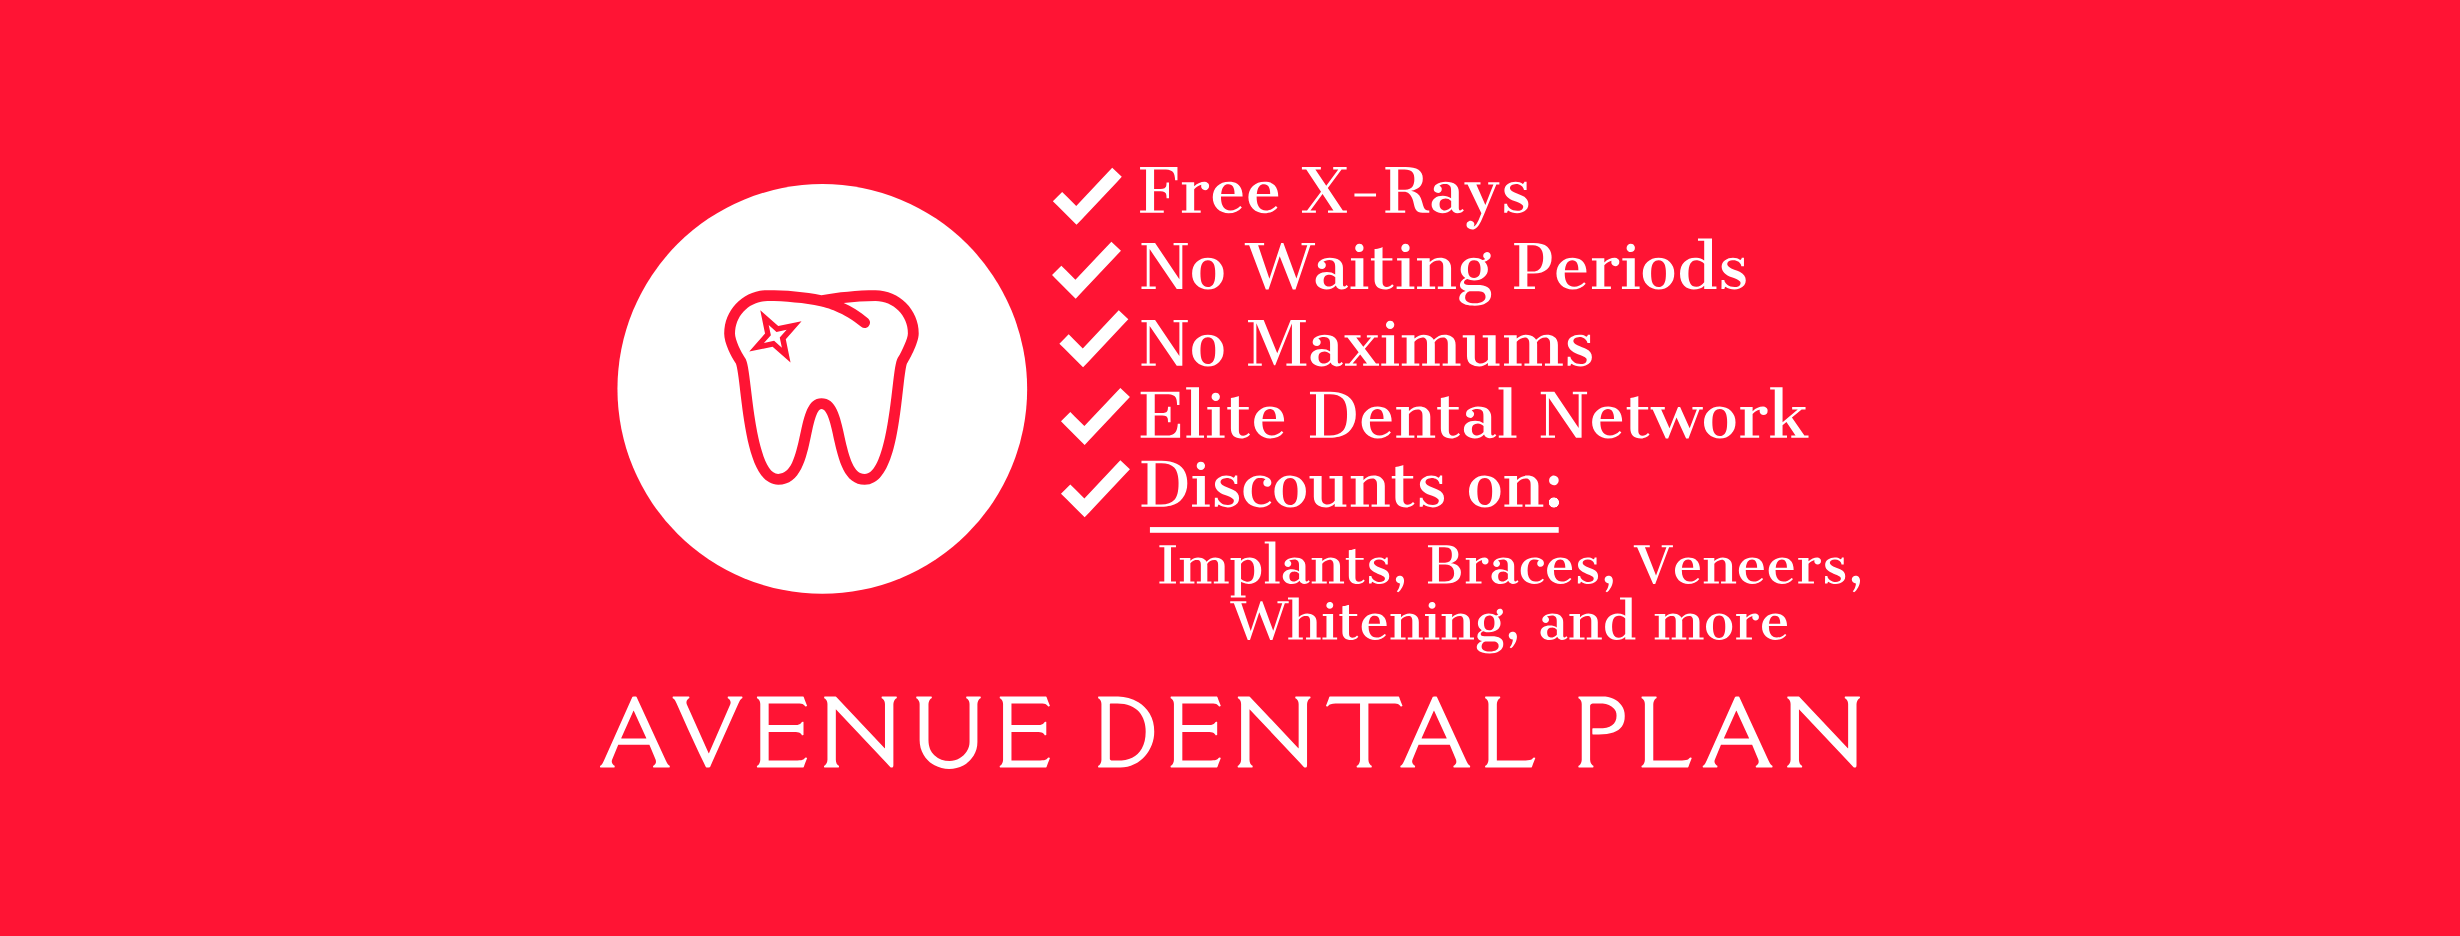 Avenue Dental Plan of Nevada